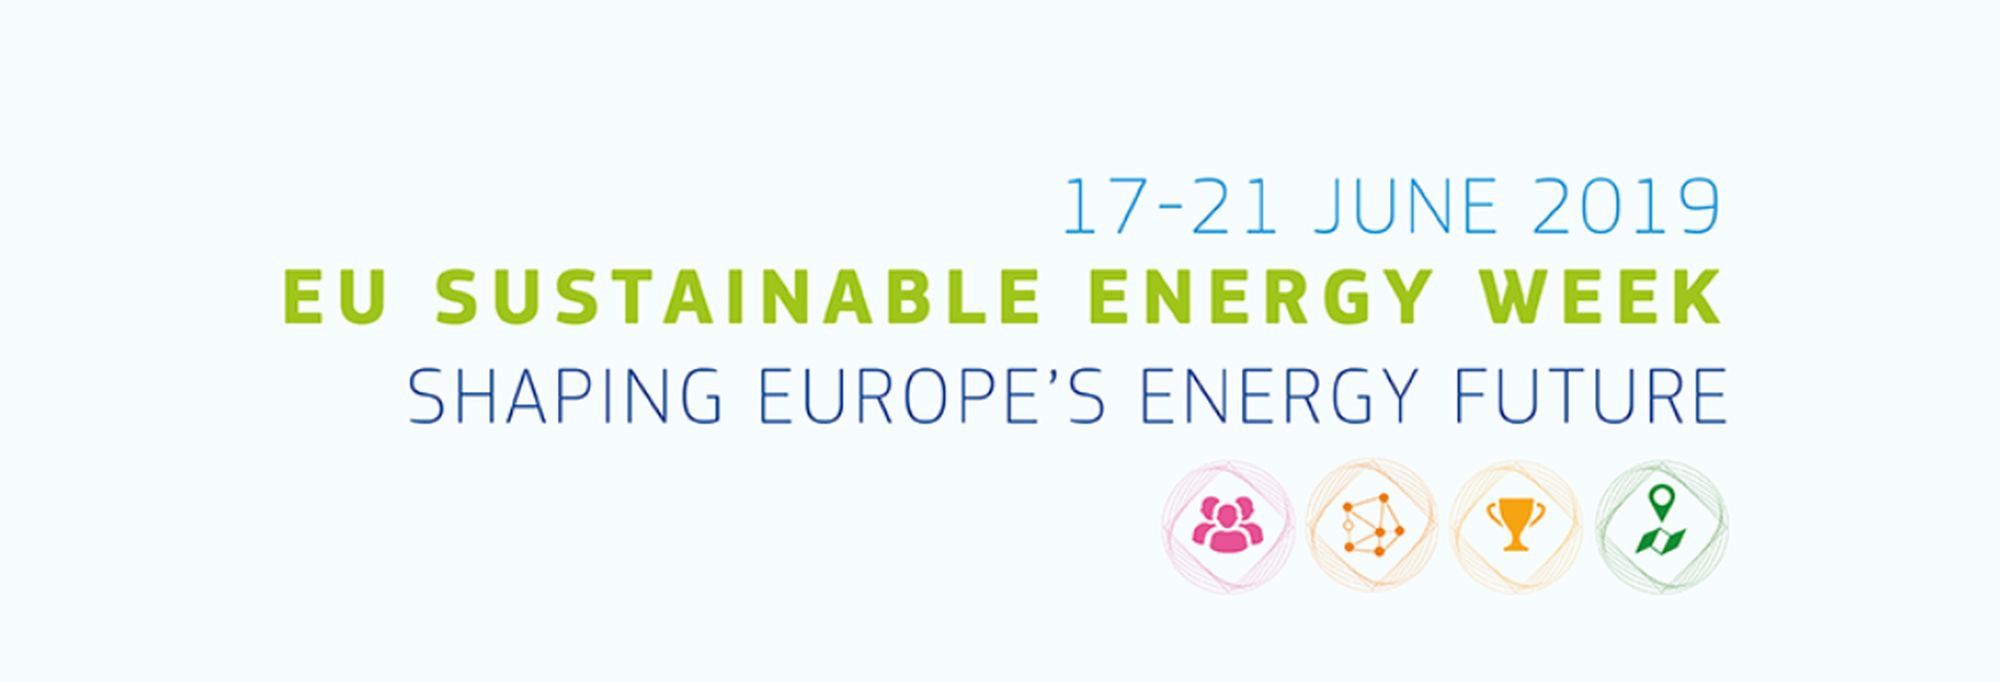 Navigating the EU Sustainable Energy Week 2019